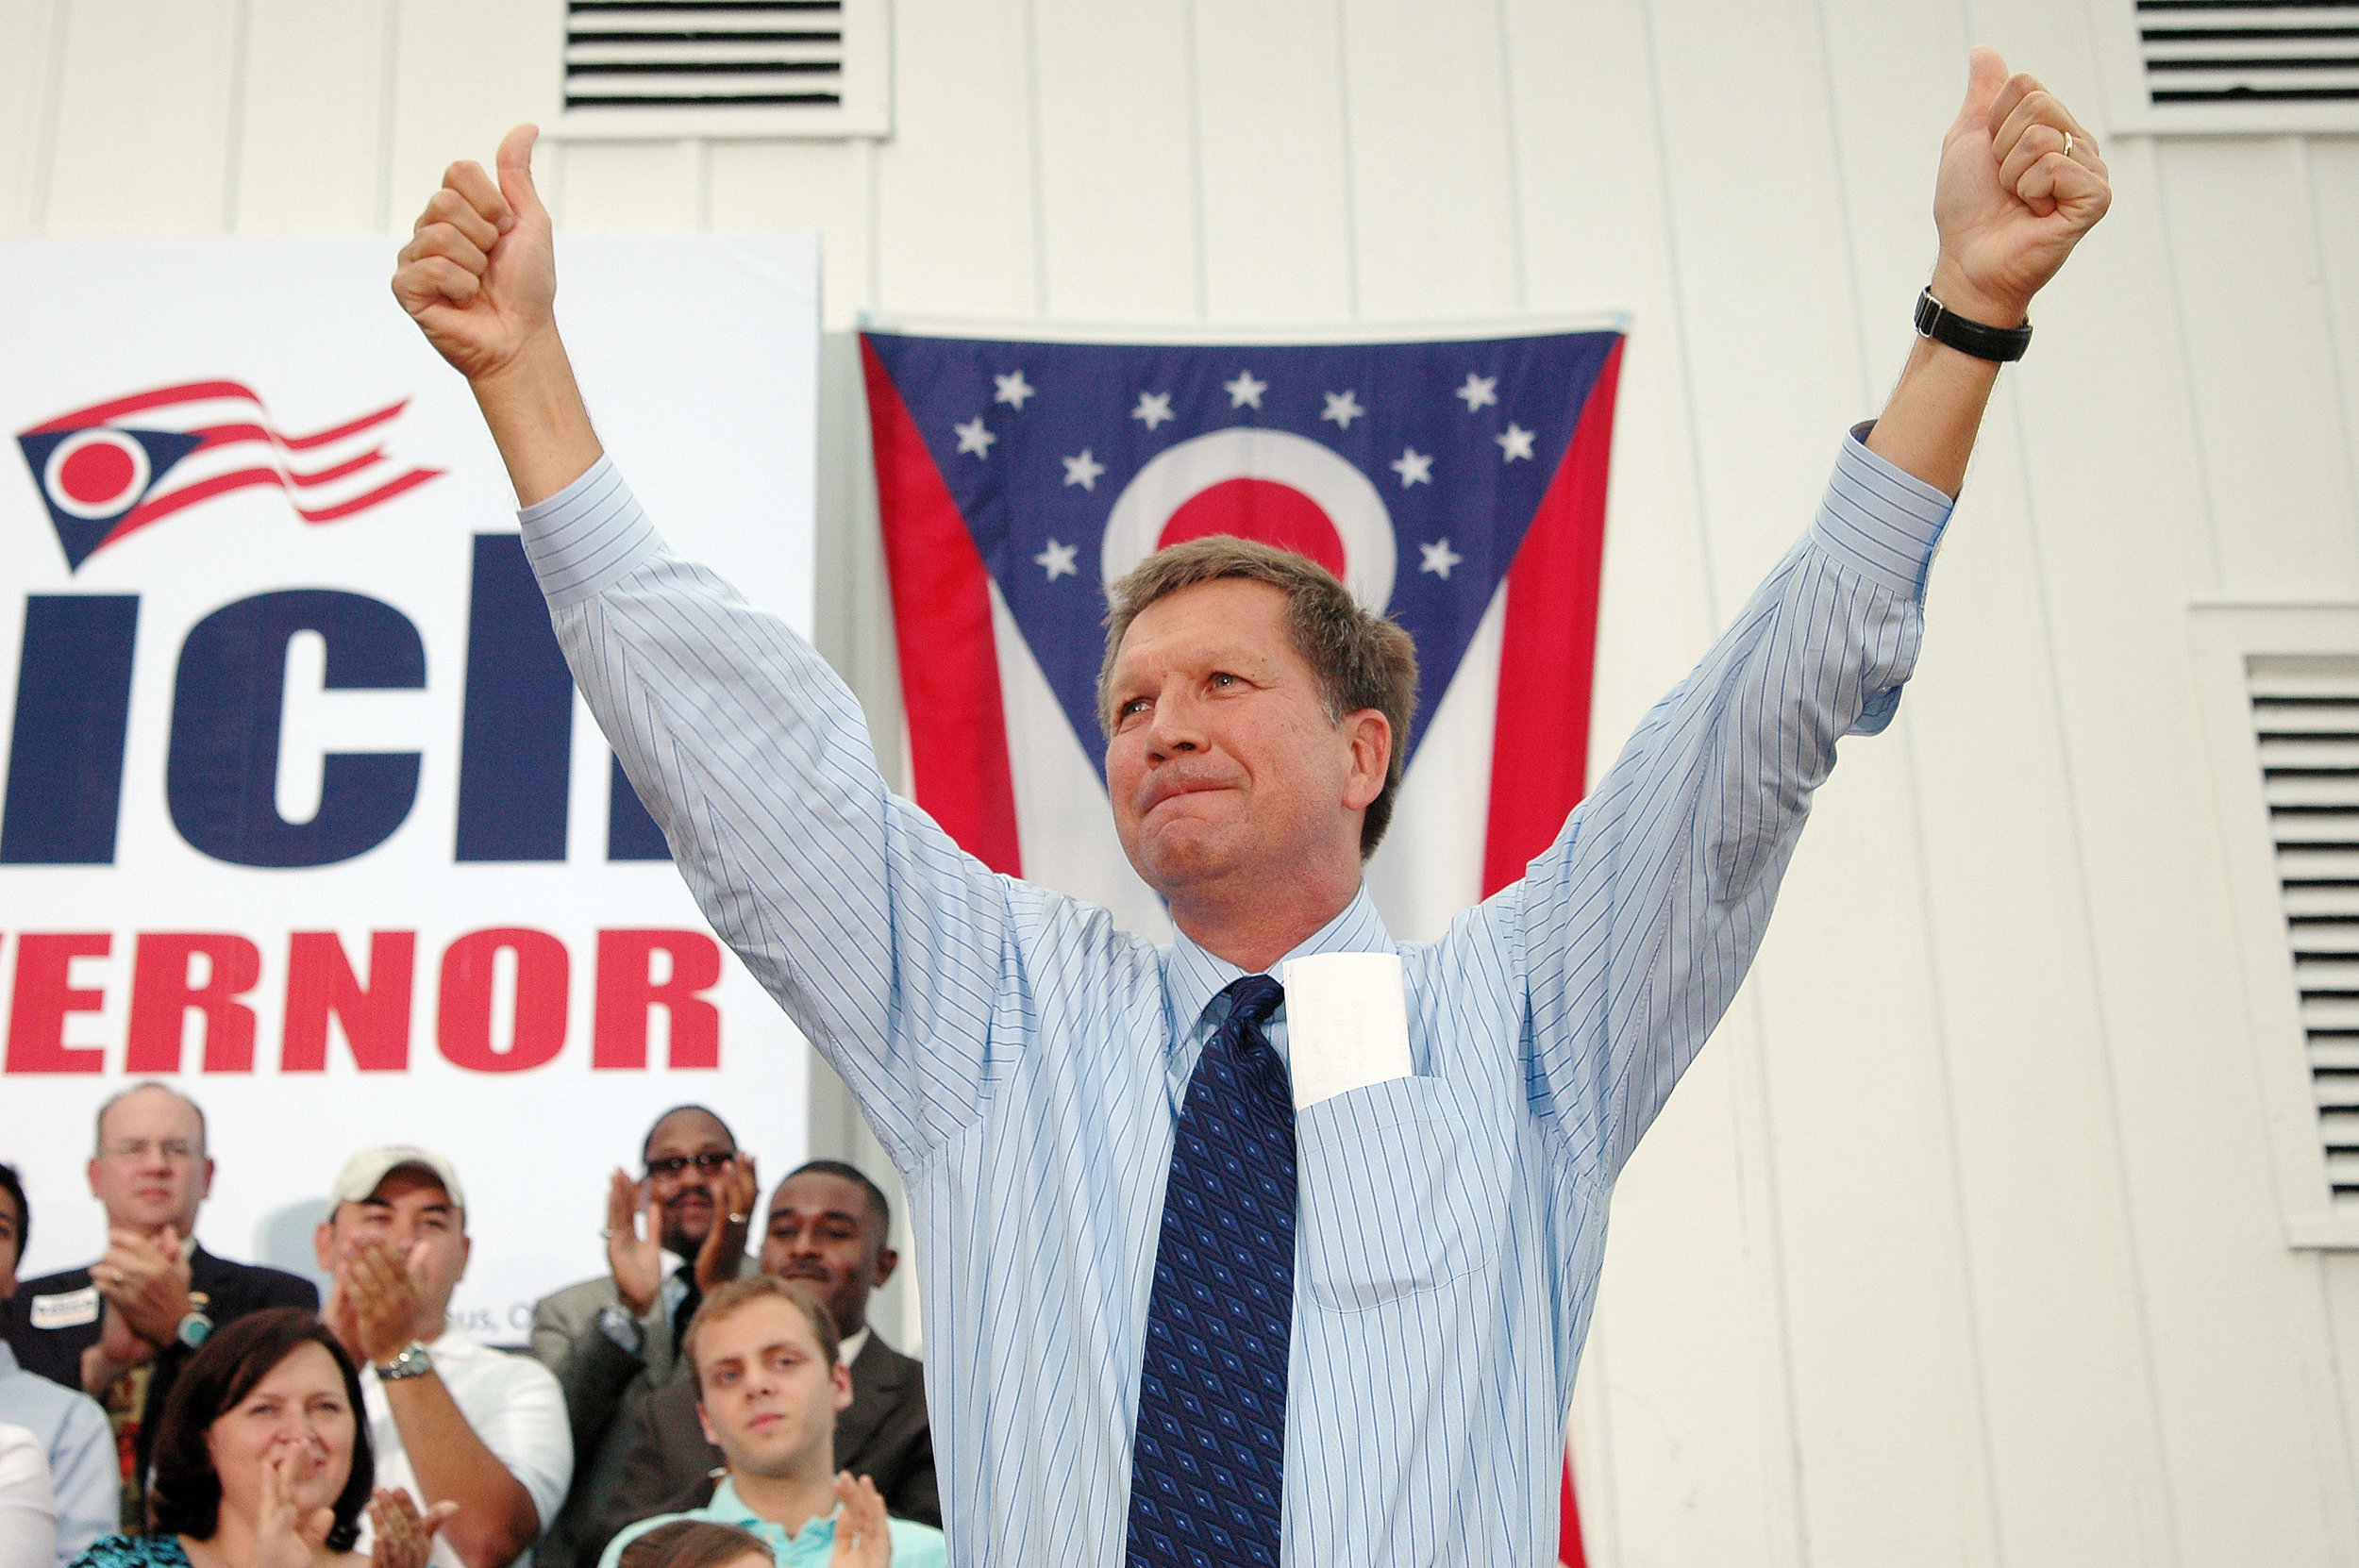 John Kasich was elected Governor of Ohio in 2010, running on a platform to restore the state's fiscal stability, cut taxes to spur growth and reform government. The result? 550,000+ new private-sector jobs, a $2.7 billion state budget surplus and new reforms to help the state's most vulnerable citizens.